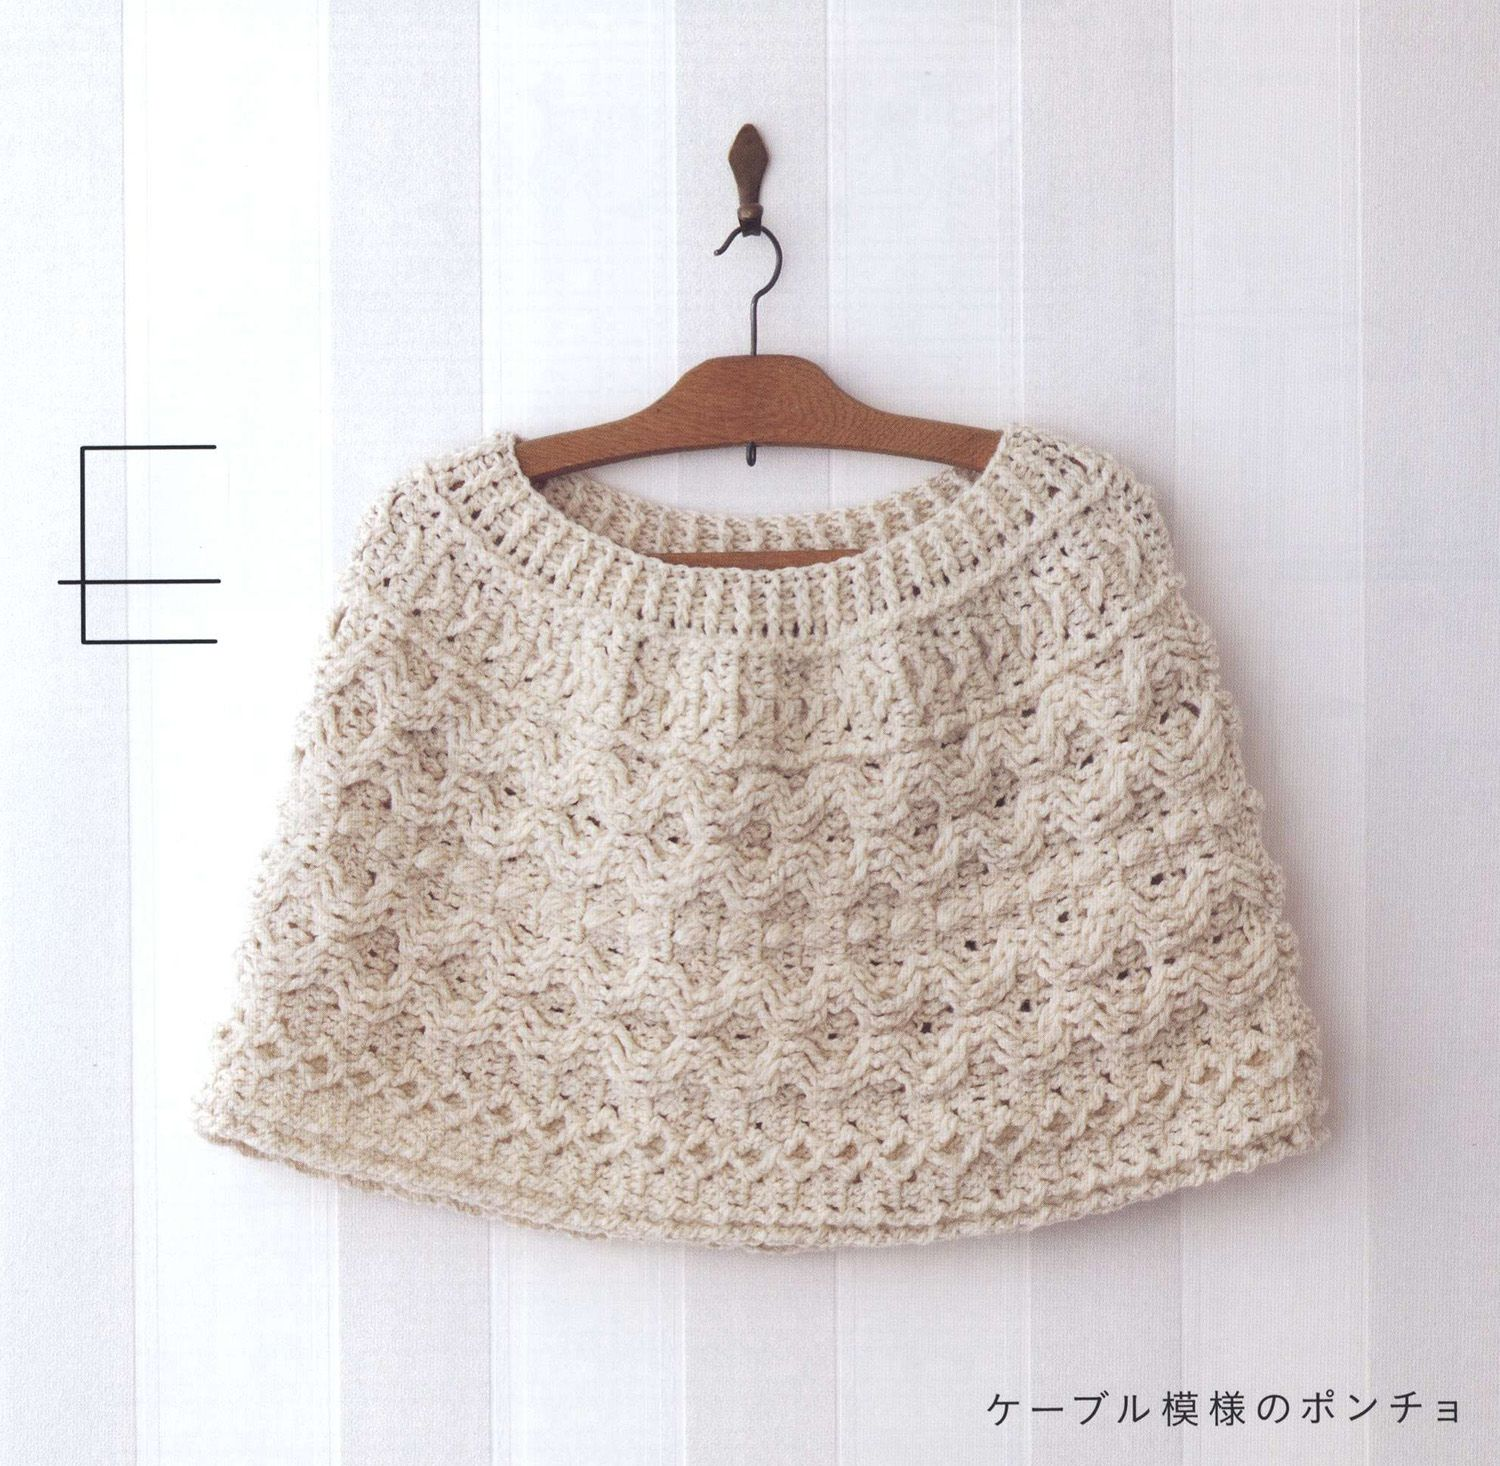 p. 24, Asahi Original, Poncho and Cape (crochet pattern) | knitting ...